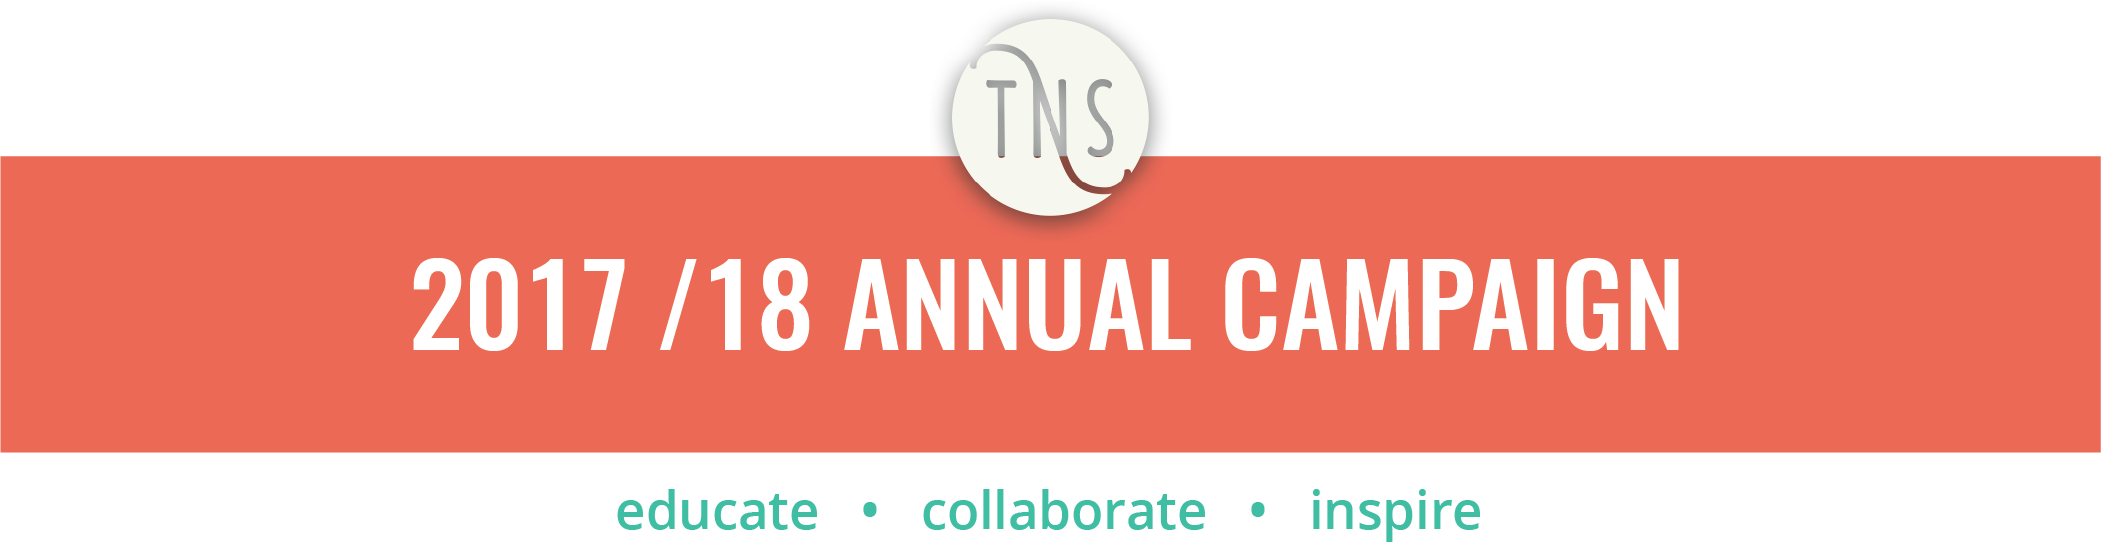 TNS Annual Campaign Banner